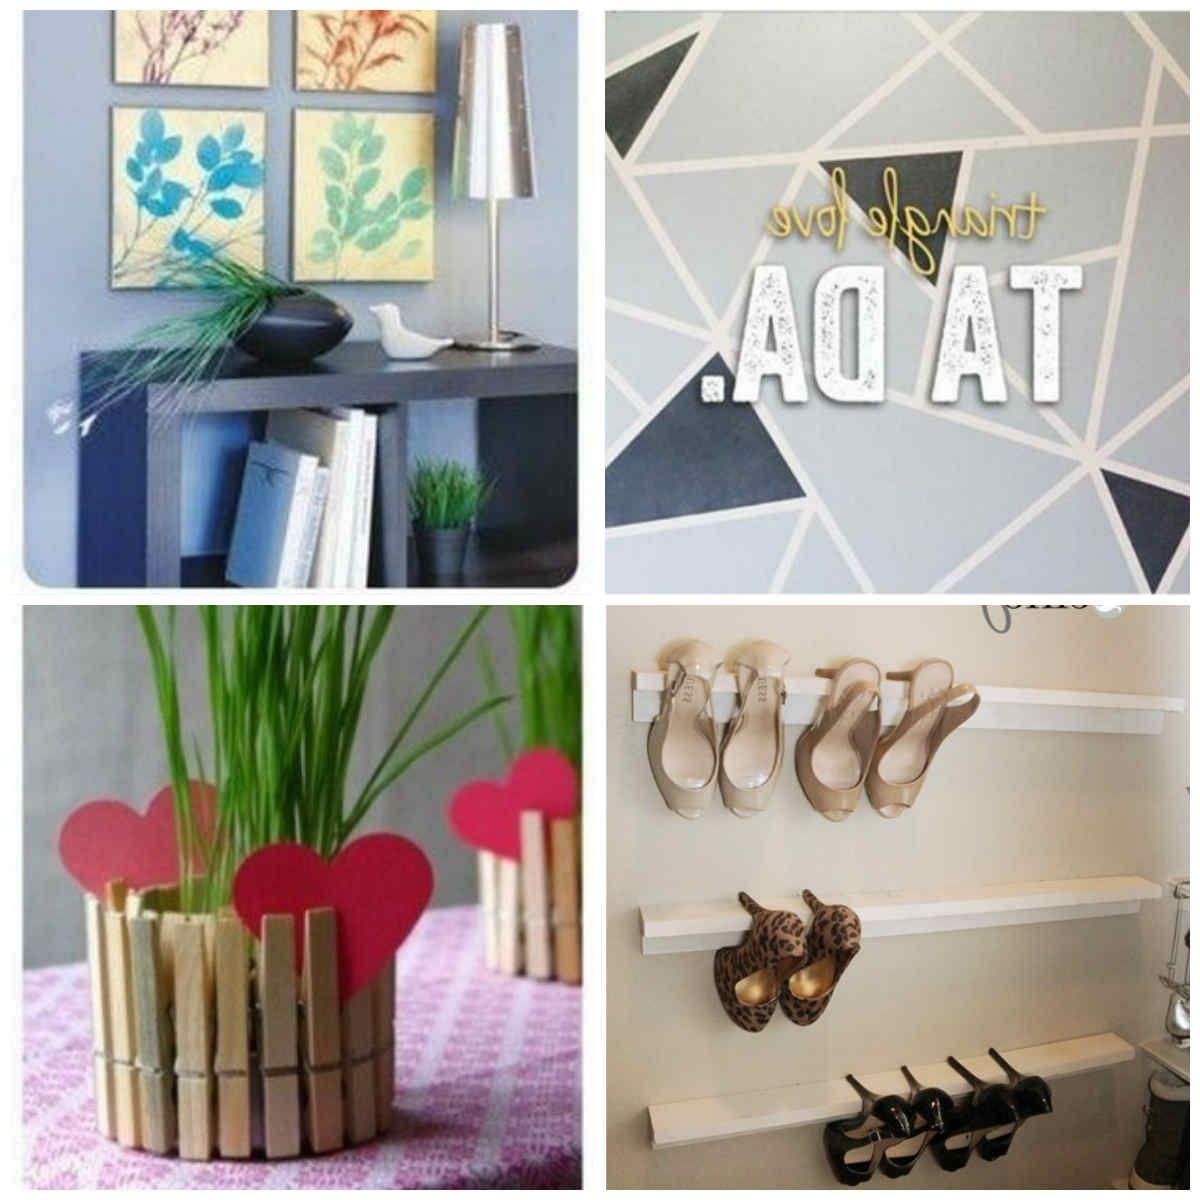 Pinterest Home Decor Diy Projects Pinterest Diy Home Decor Projects 20 Diy Home Projects I Nap